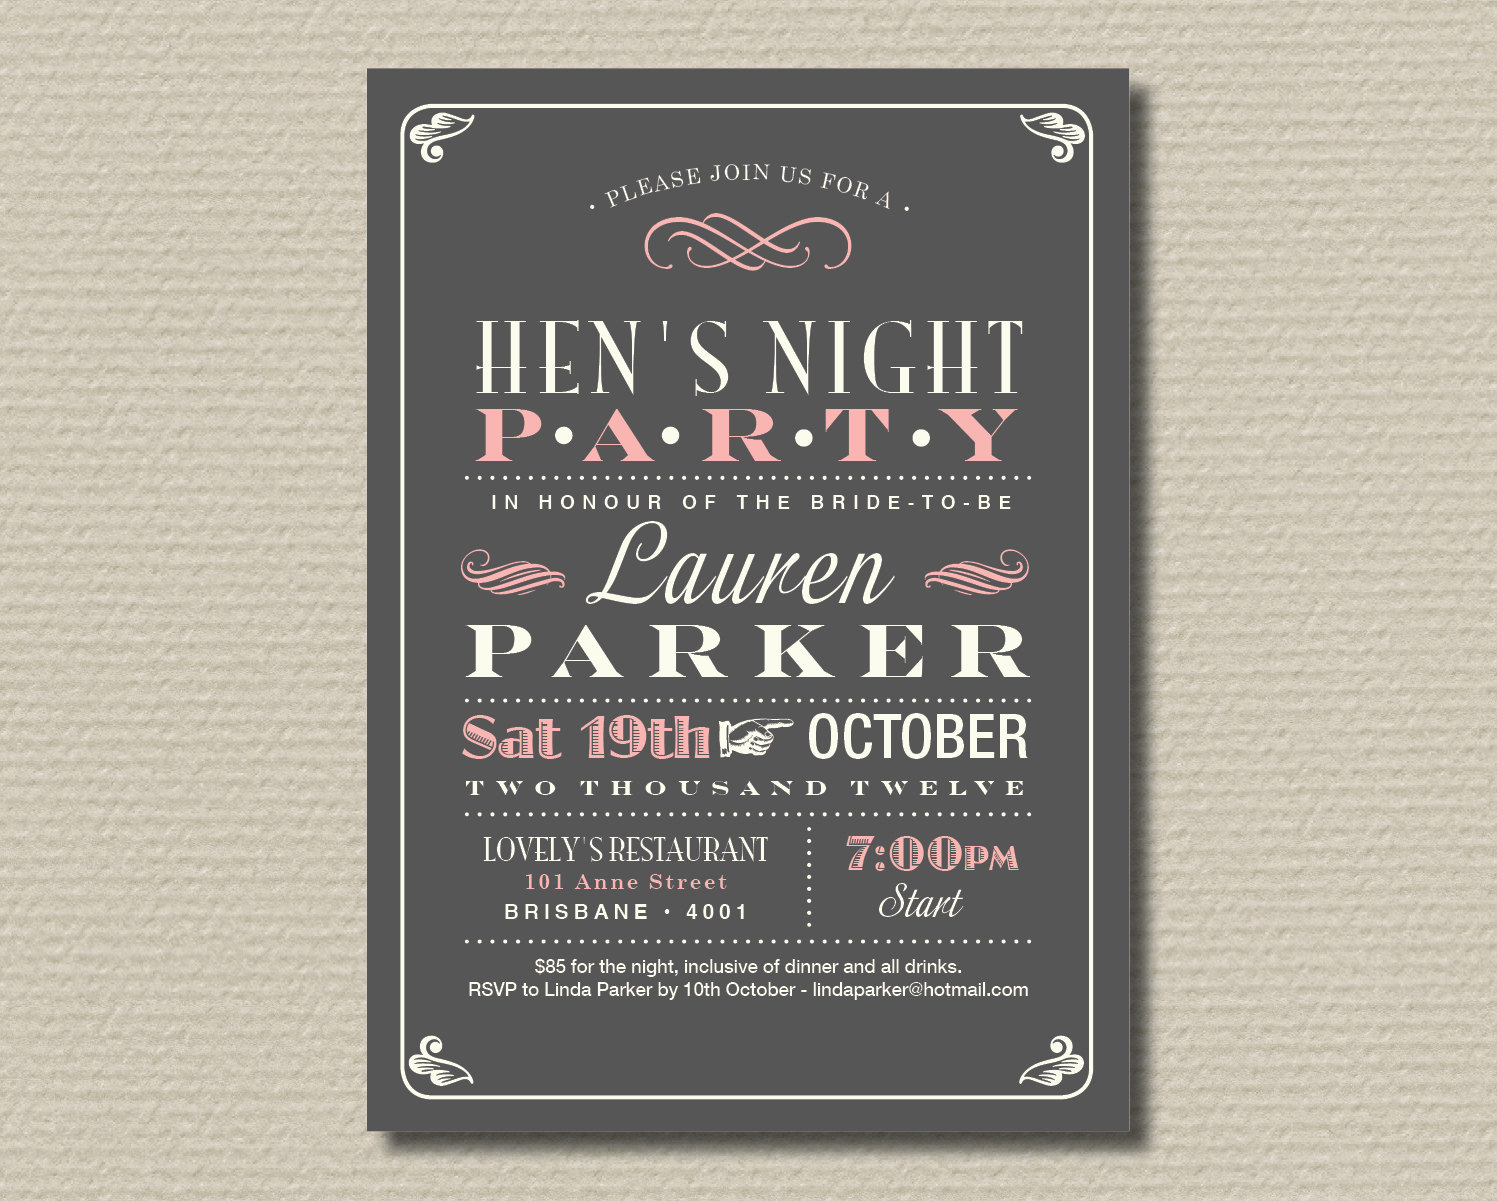 Hen party invitation templates mickey mouse invitations templates hen party invitation templates stopboris Image collections